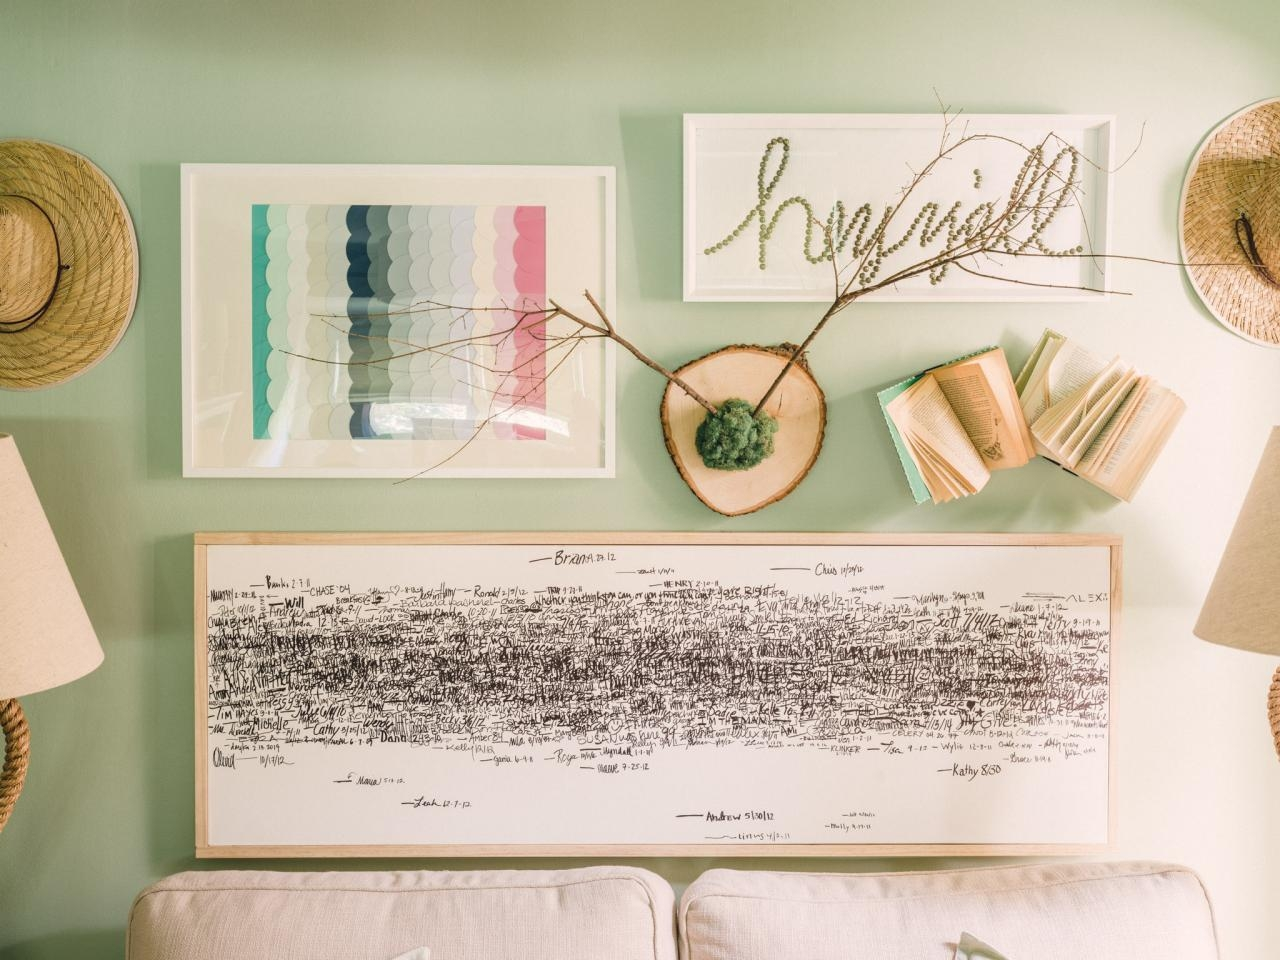 18 Genius Wall Decor Ideas | Hgtv's Decorating & Design Blog | Hgtv With Regard To Mother Of Pearl Wall Art (View 14 of 20)